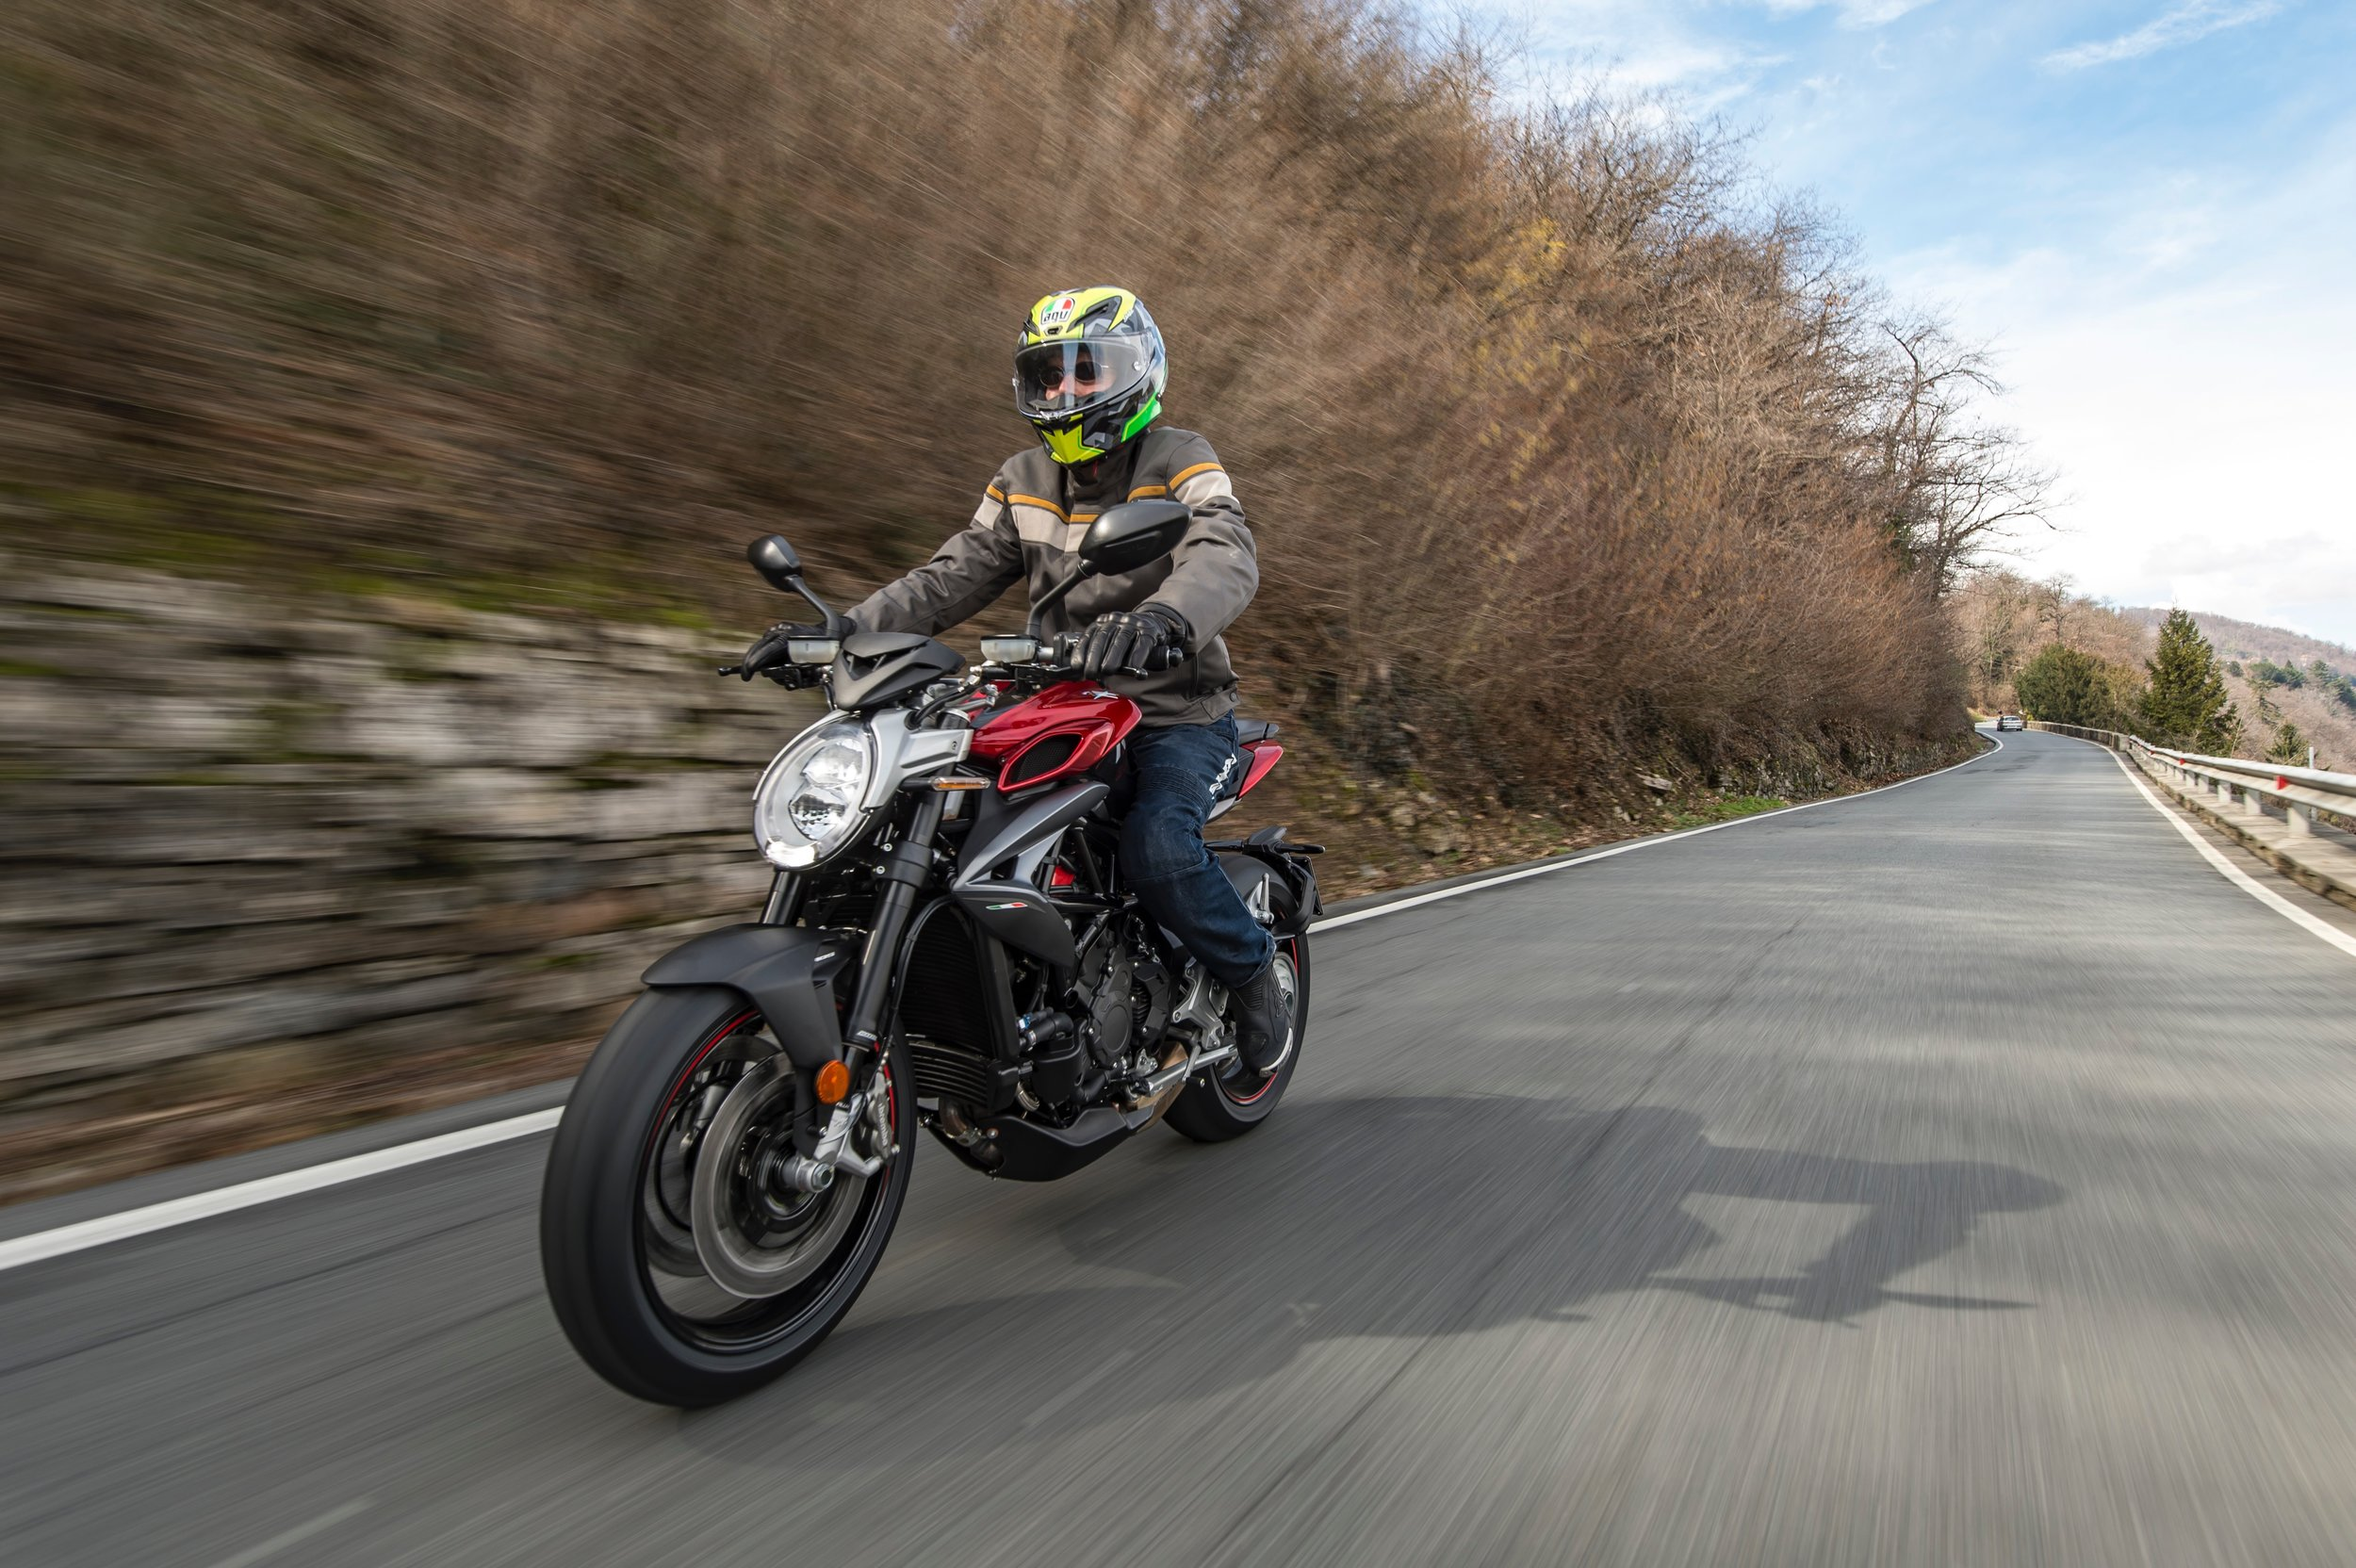 I recently spent a day  riding the new MV Agusta Brutale 800 RR around Lago Maggiore,  in northern Italy. I can tell you that knowing what road conditions were like around the next corner would have dramatically improved my experience.